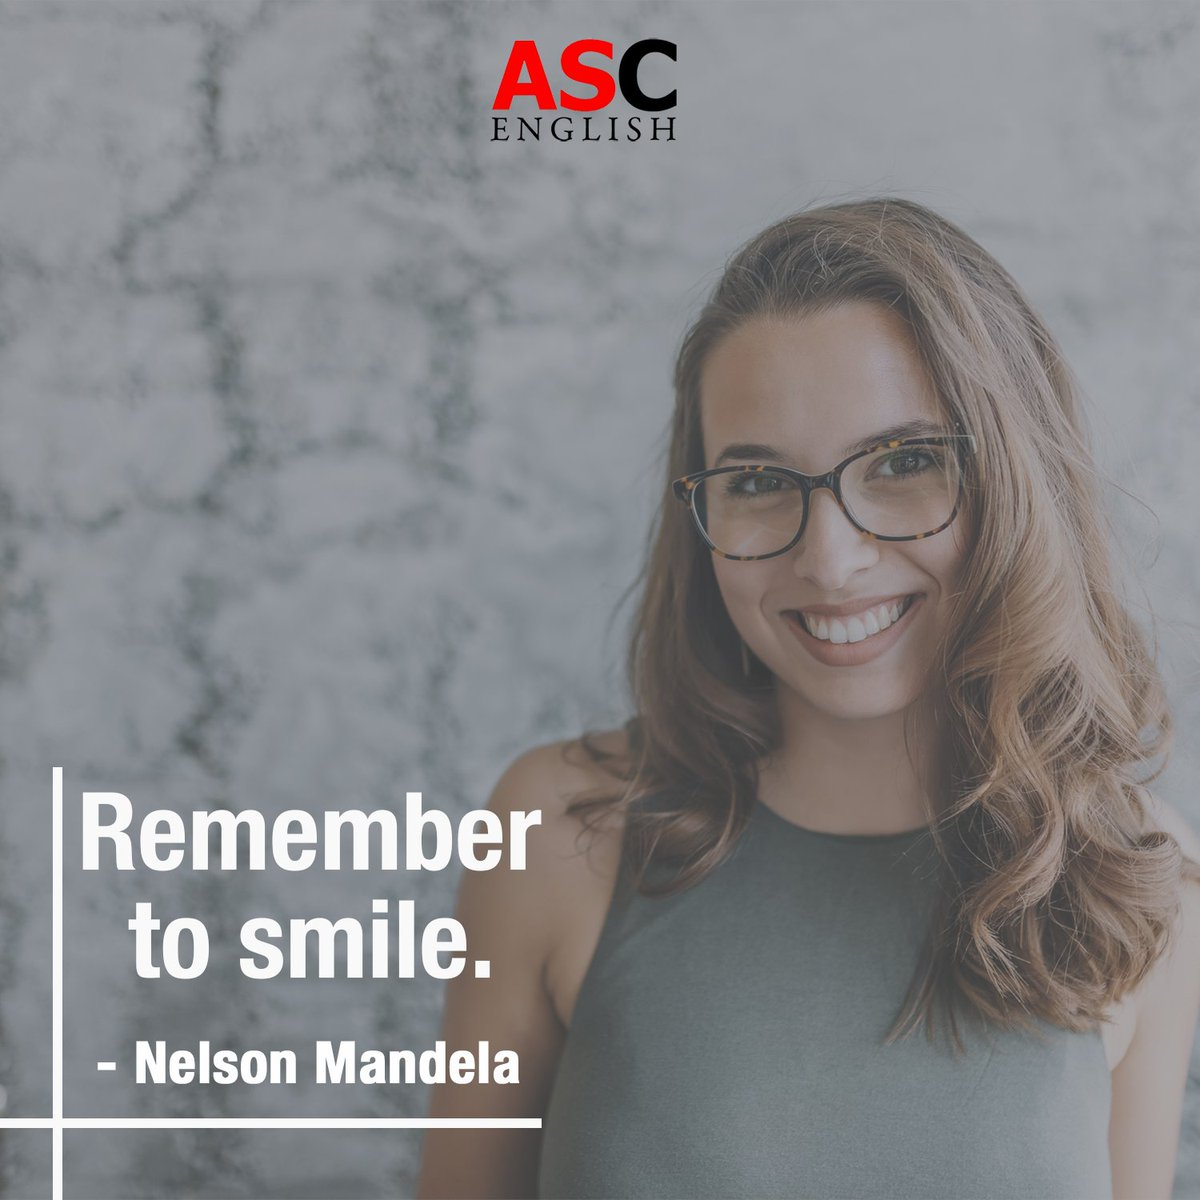 Happy Monday !  Don't forget to smile today, stay positive and practice your English language skills.  #positivequotes #smile #positivity #learnenglish #englishlanguage #learning #bostonpic.twitter.com/mW9cWk0kFC